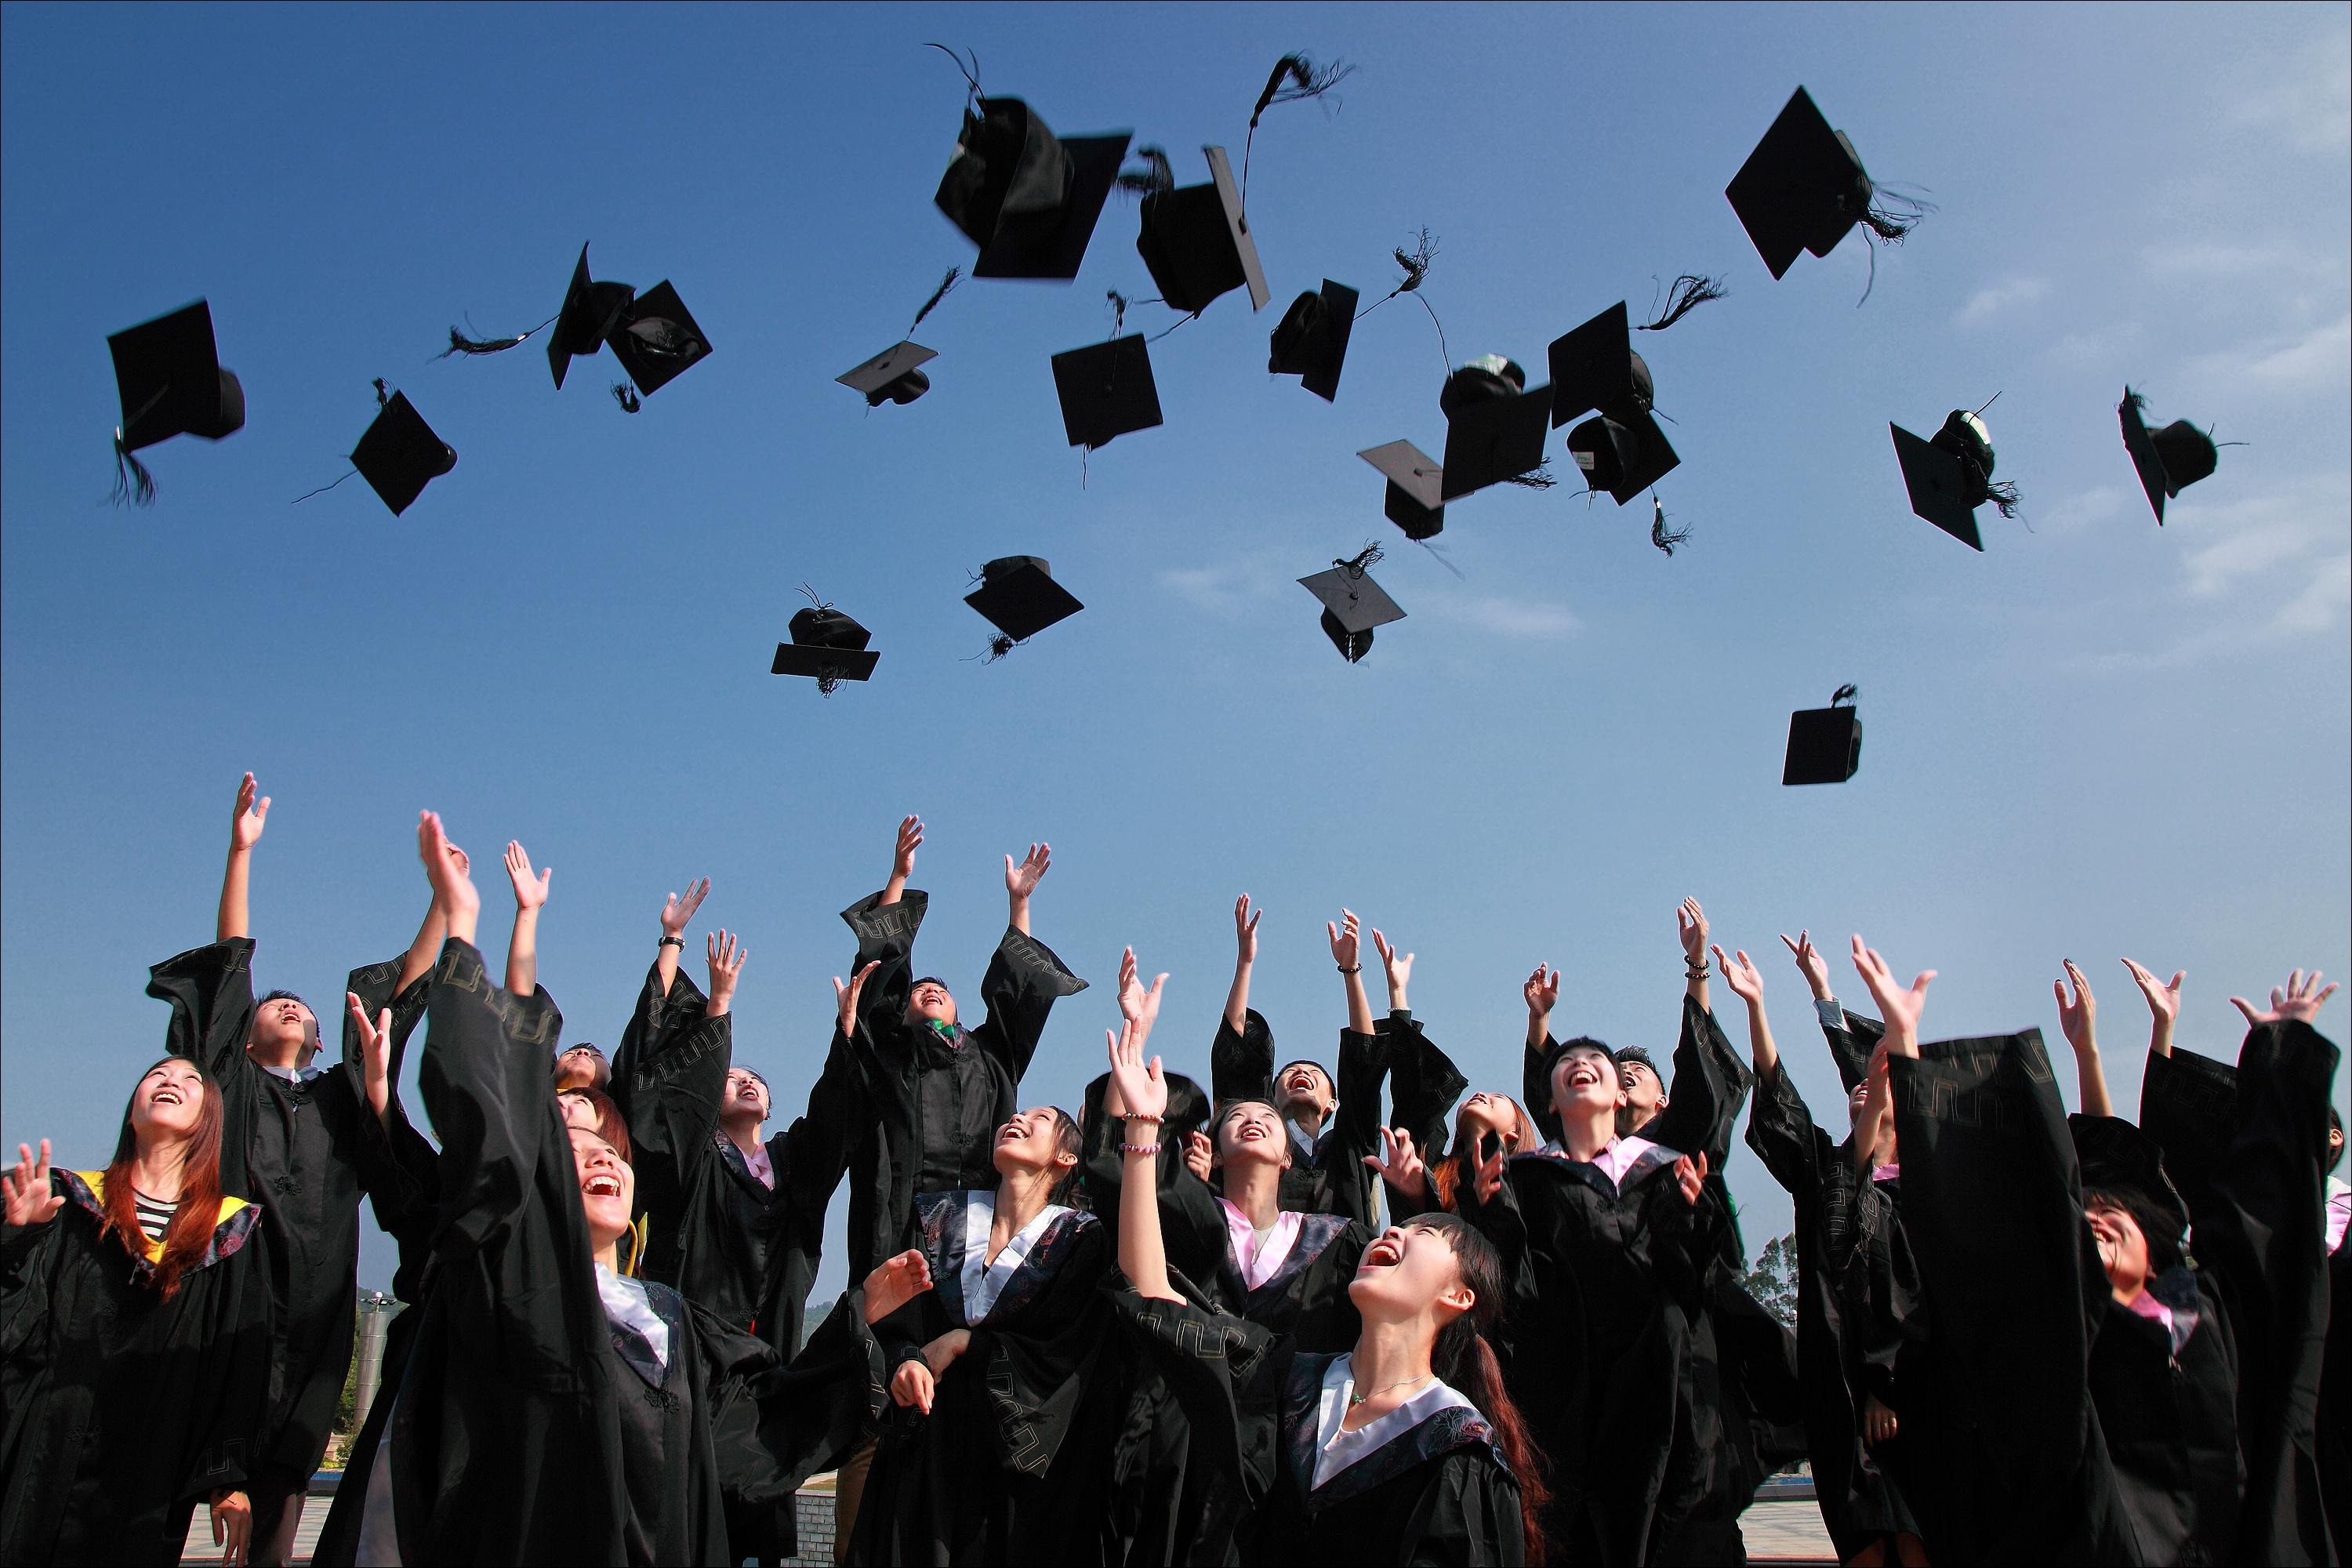 Graduating students throwing their caps in the air